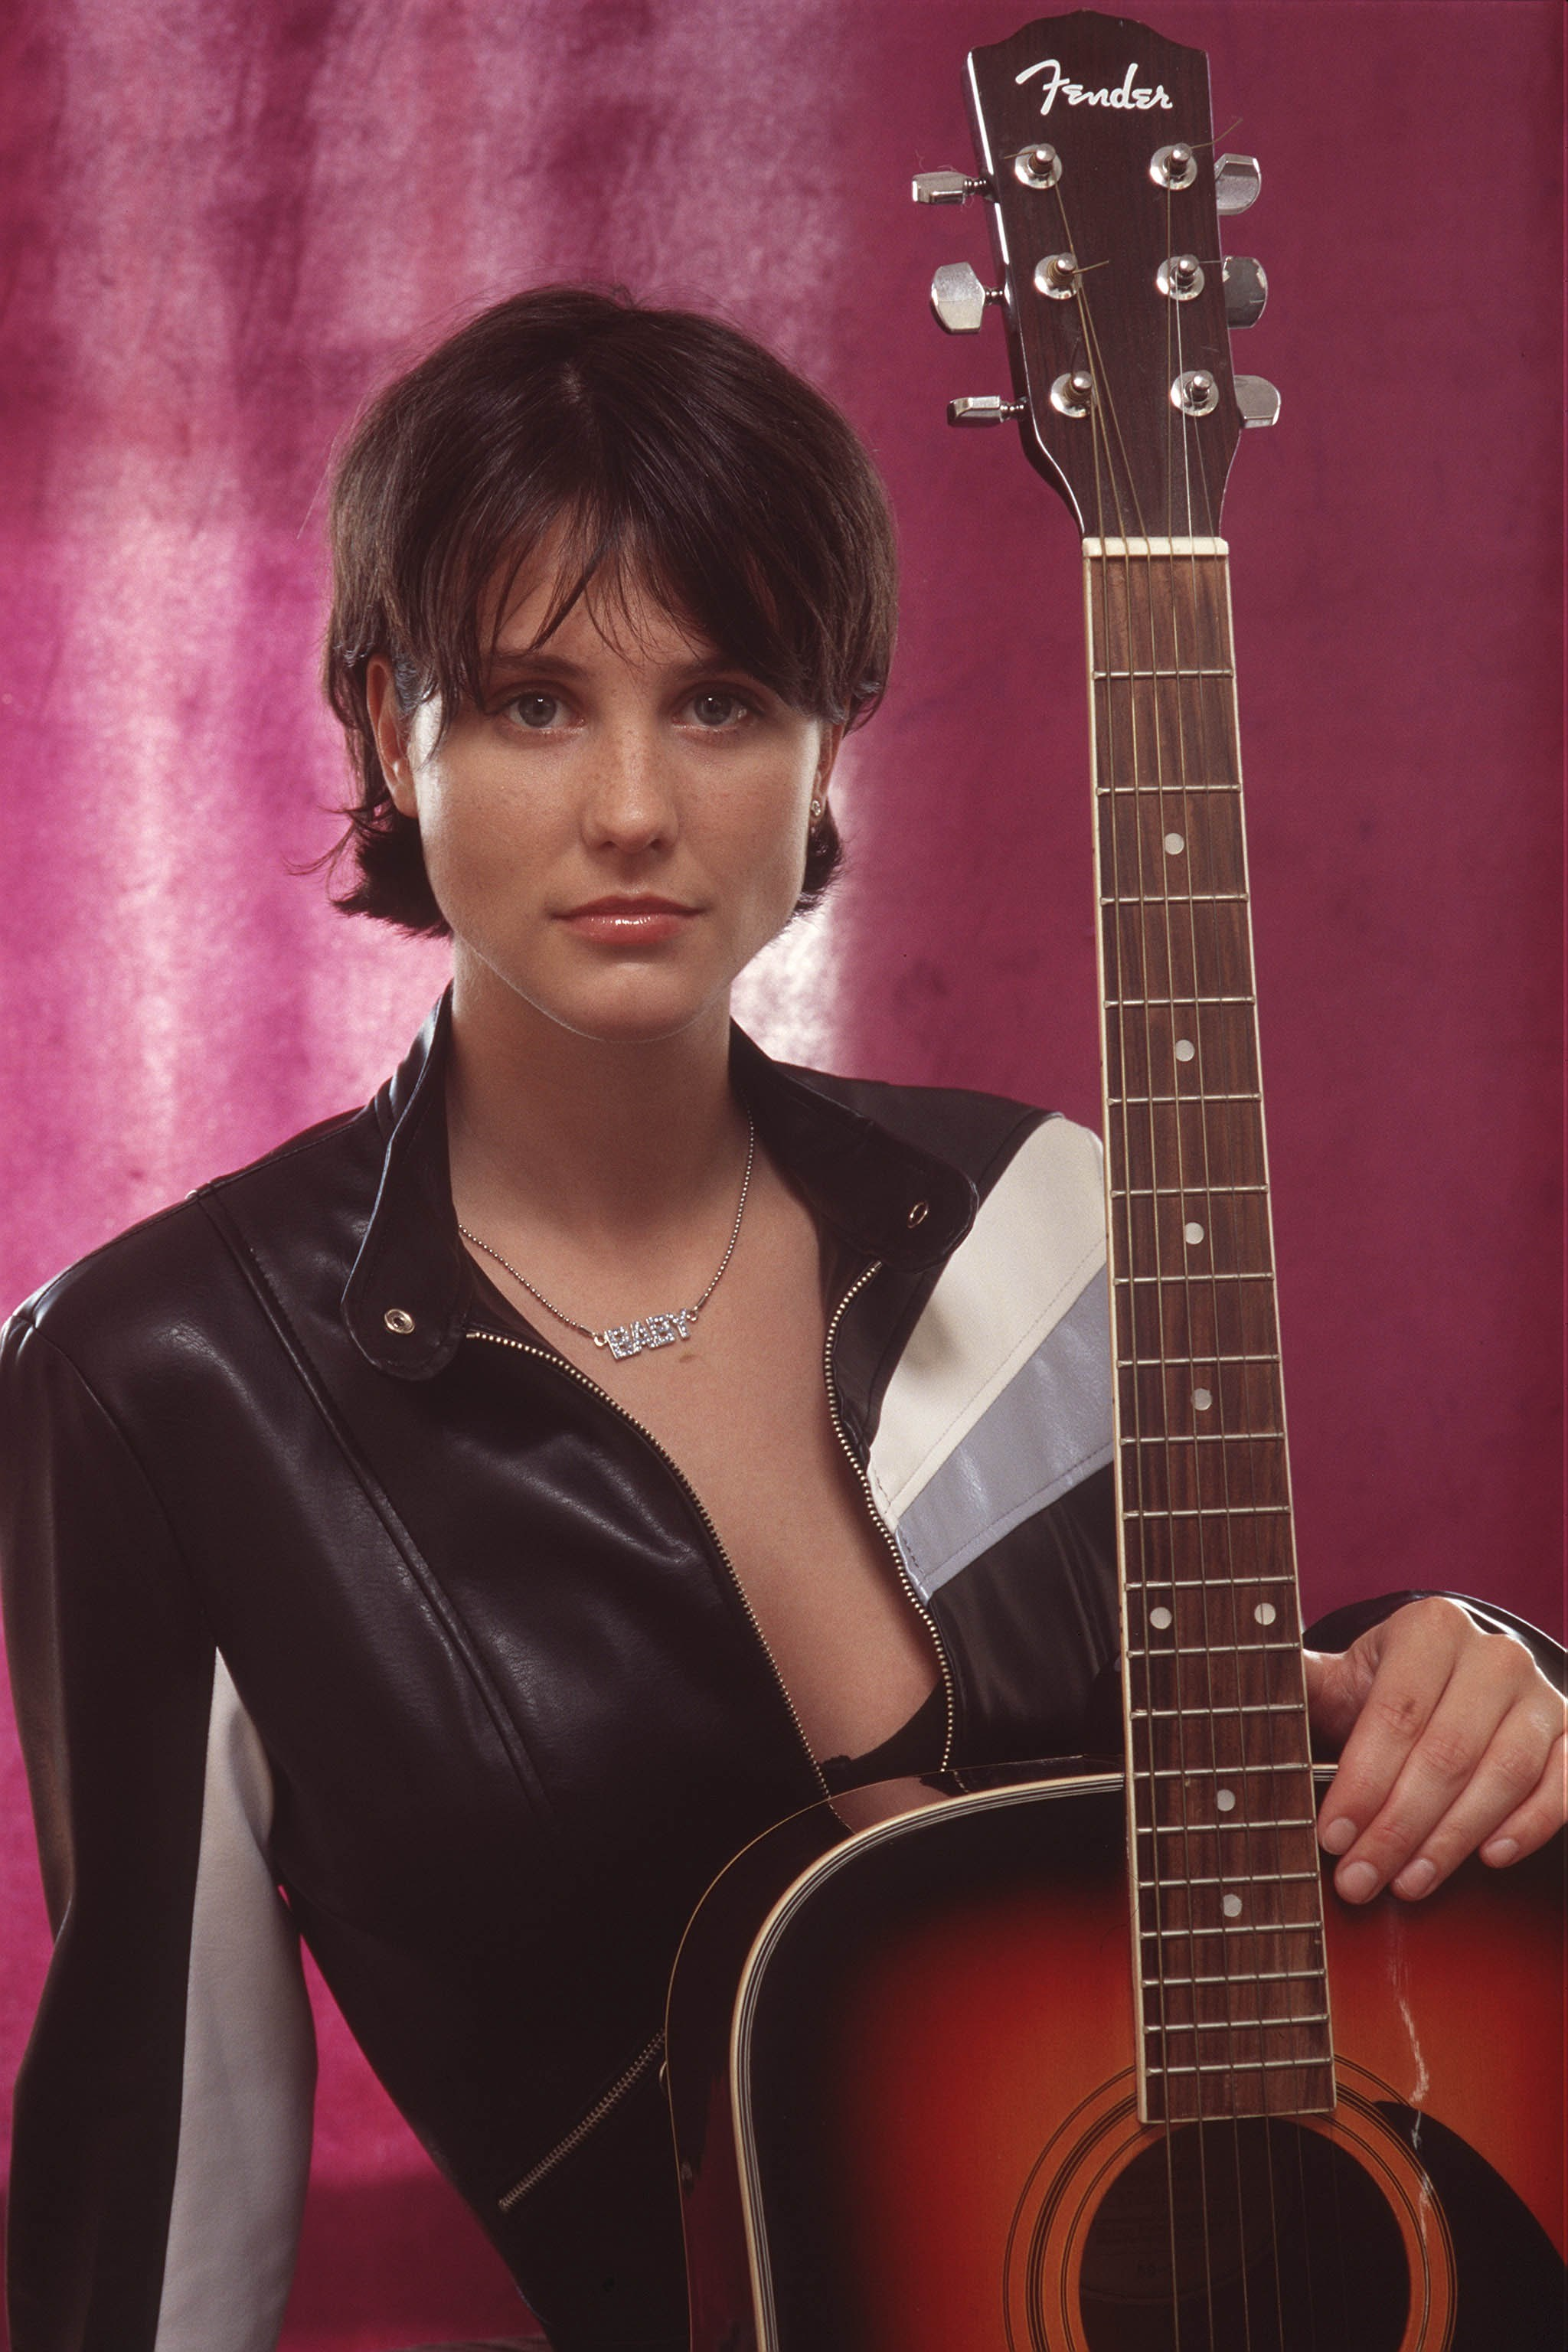 London Girl Wallpaper Heather Peace Known People Famous People News And